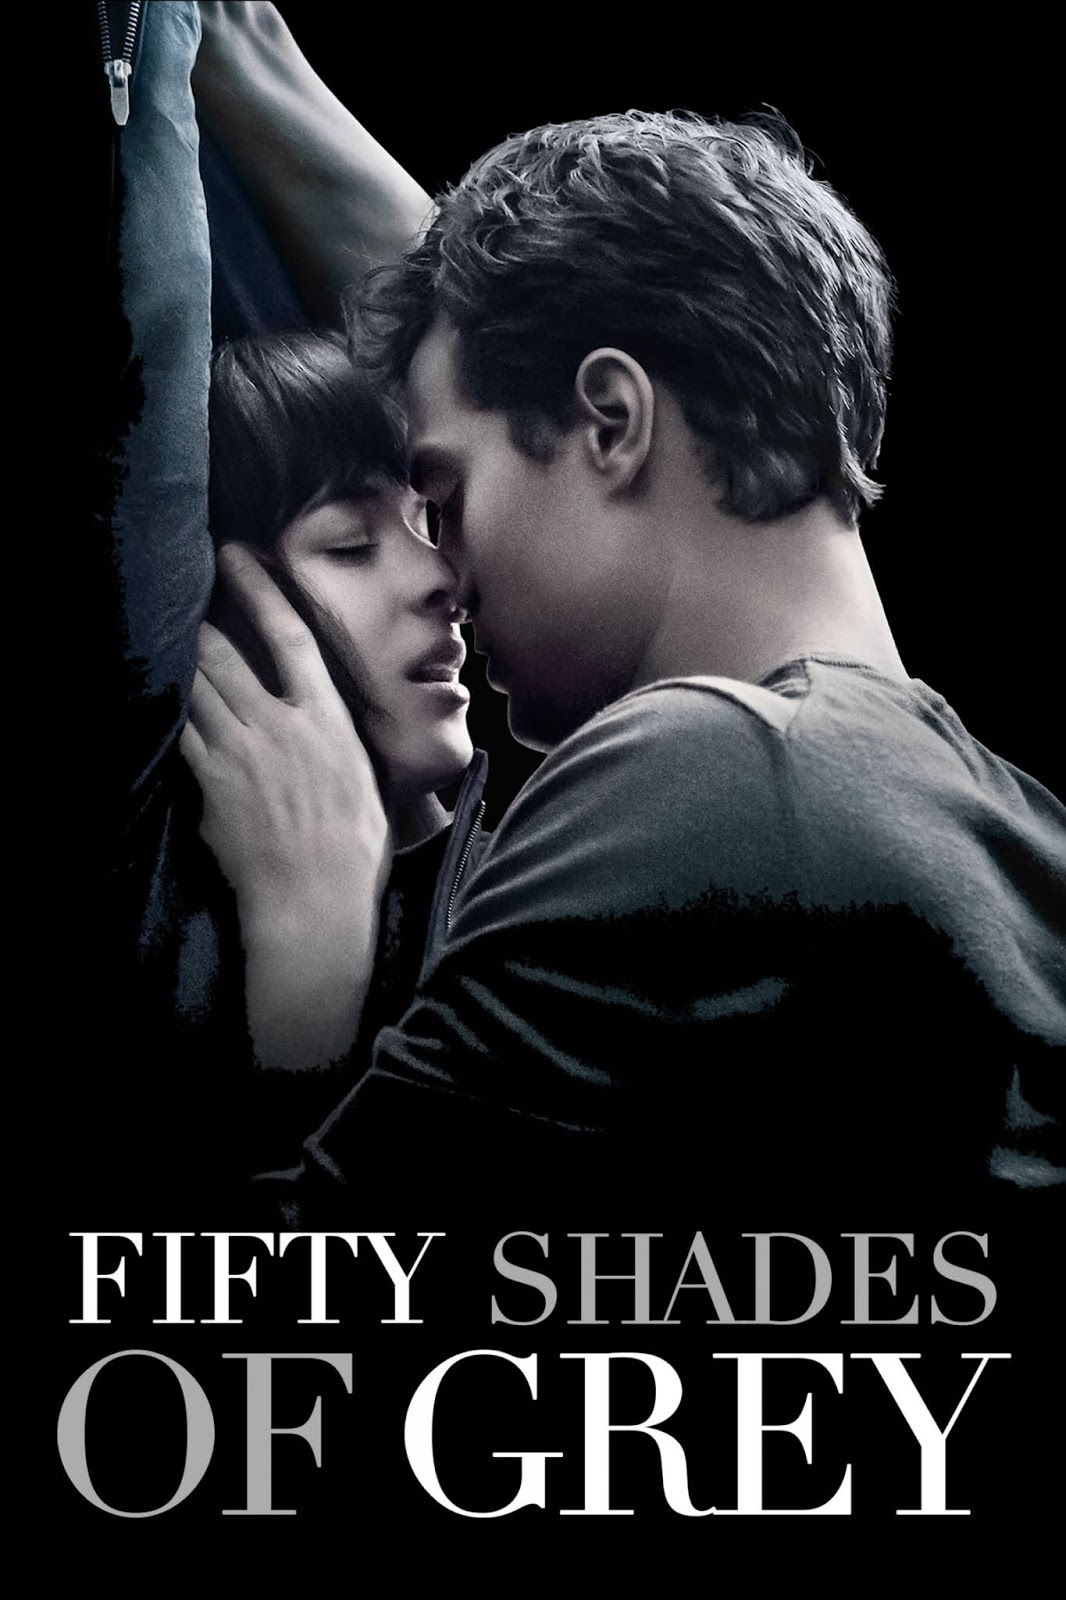 Fifty Shades of Grey Full USA 18+ Adult Movie Online Free